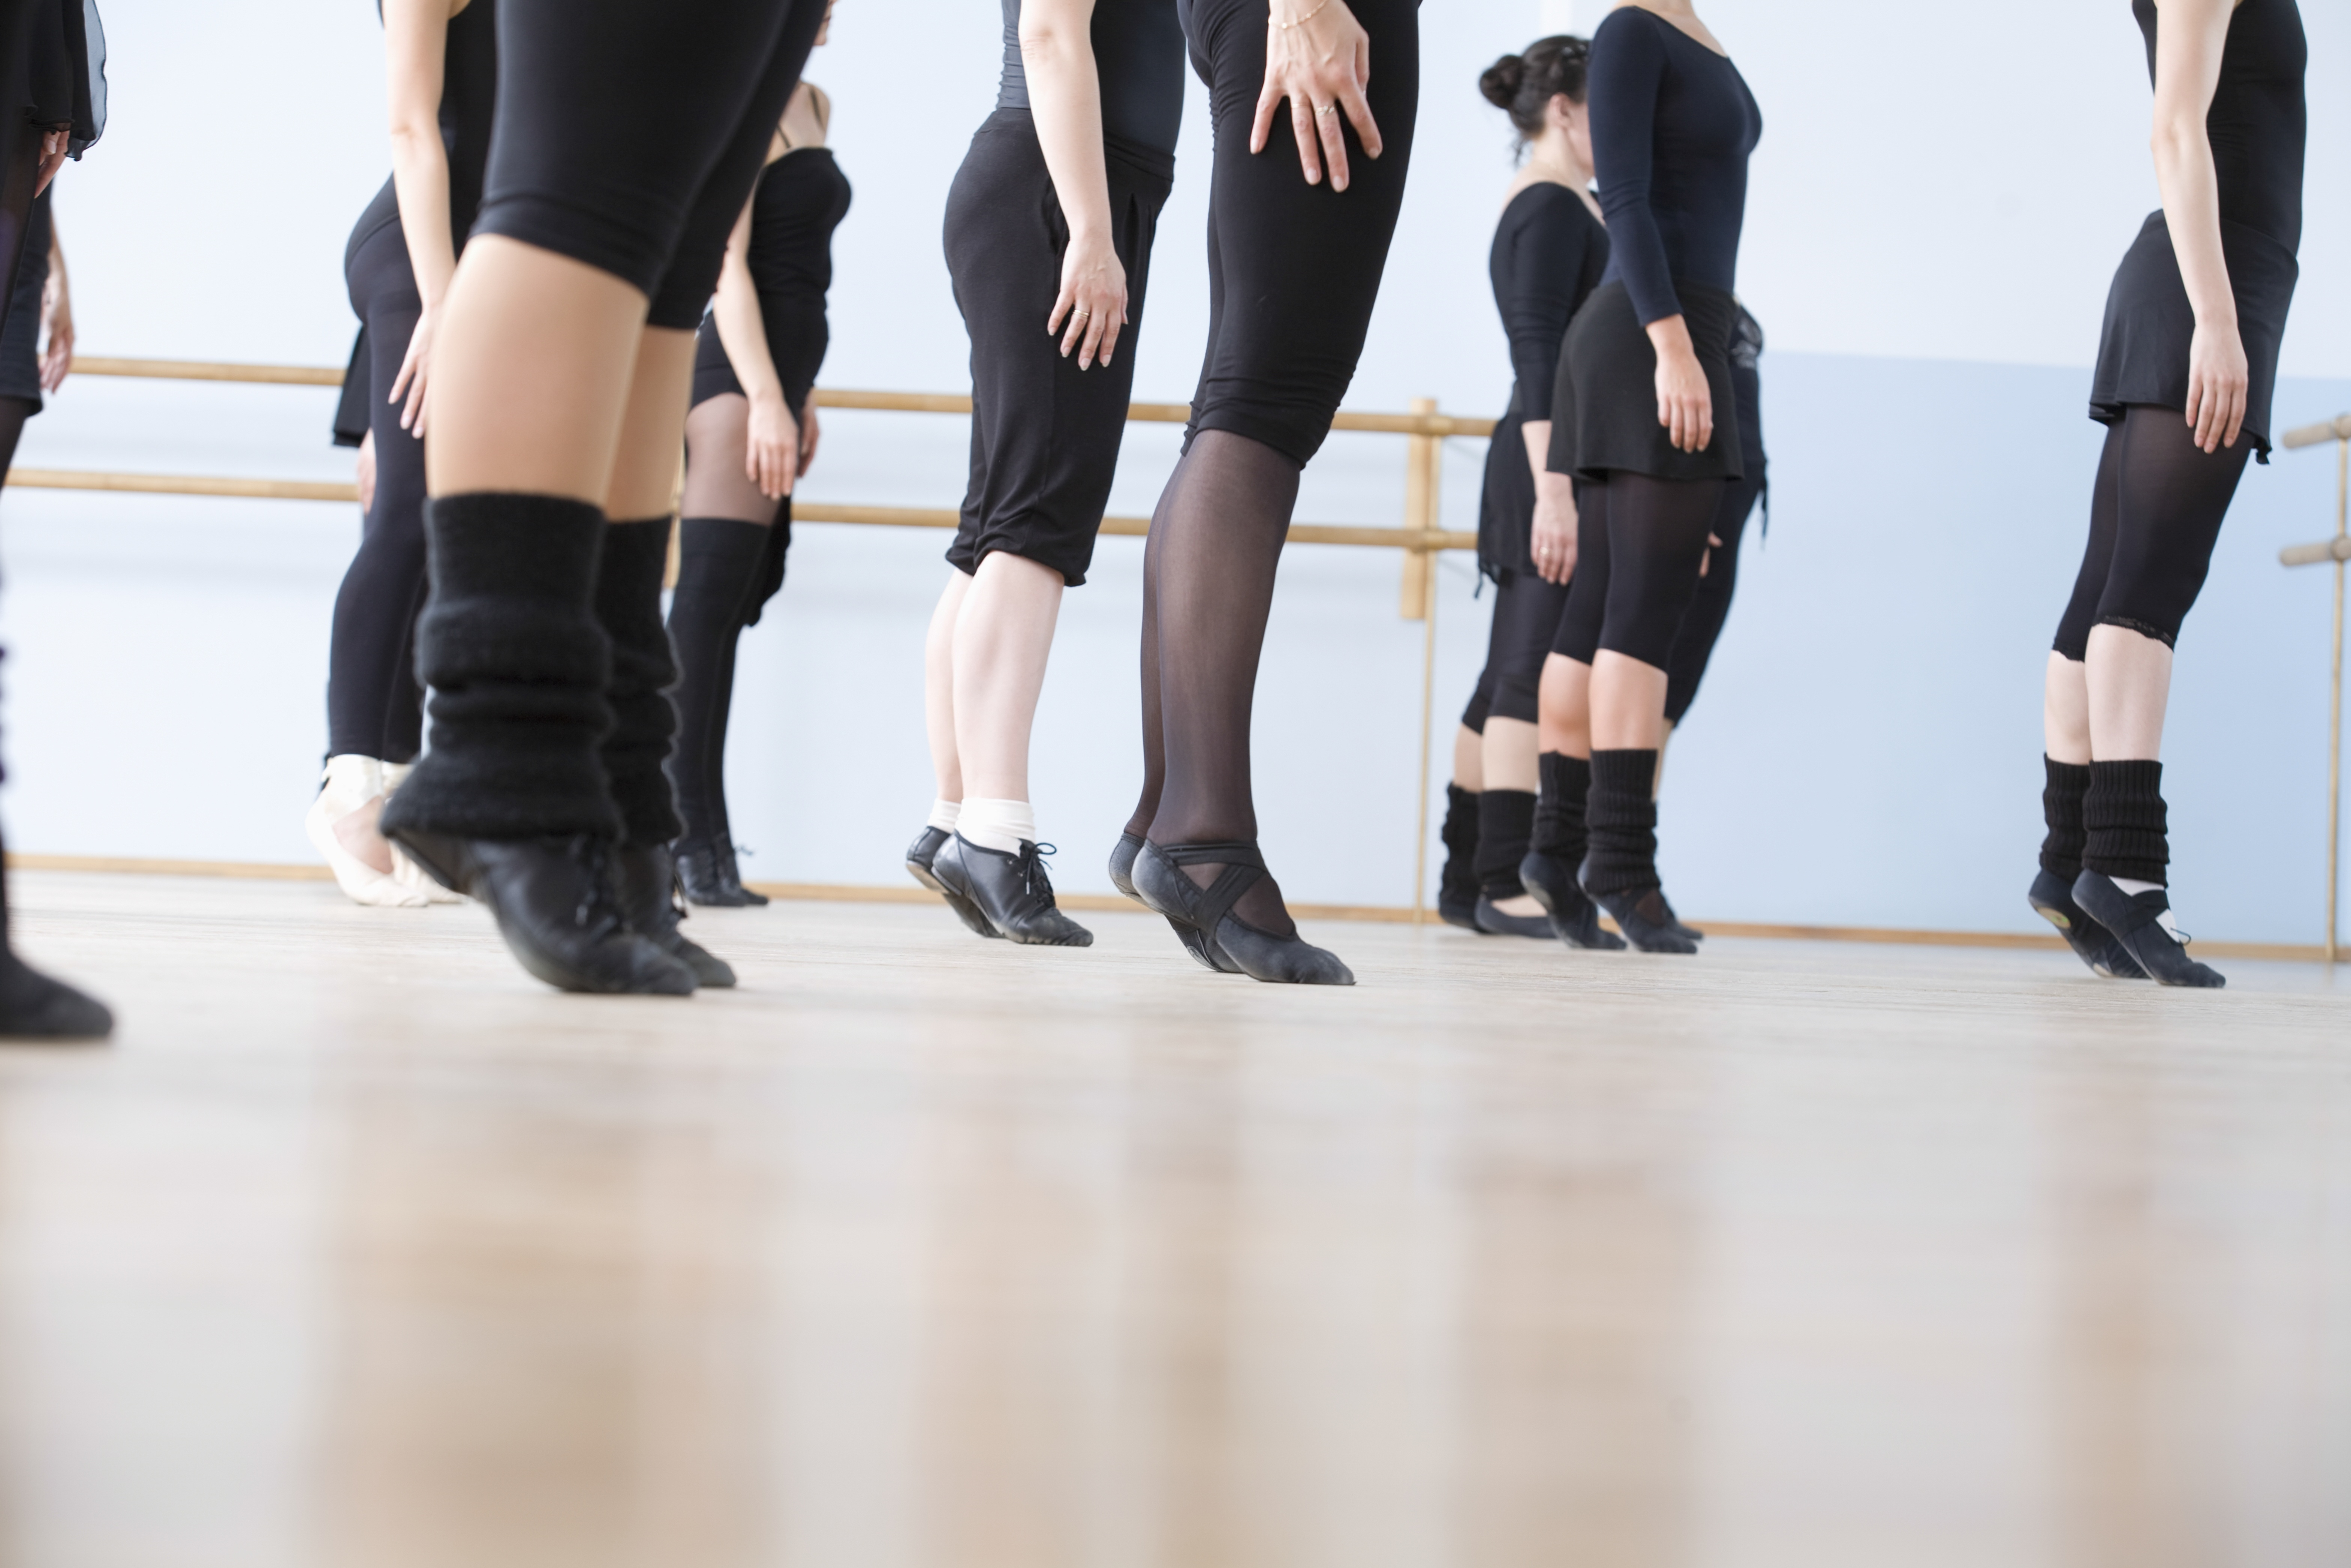 8 Tips for Dancers at Musical Theater Auditions